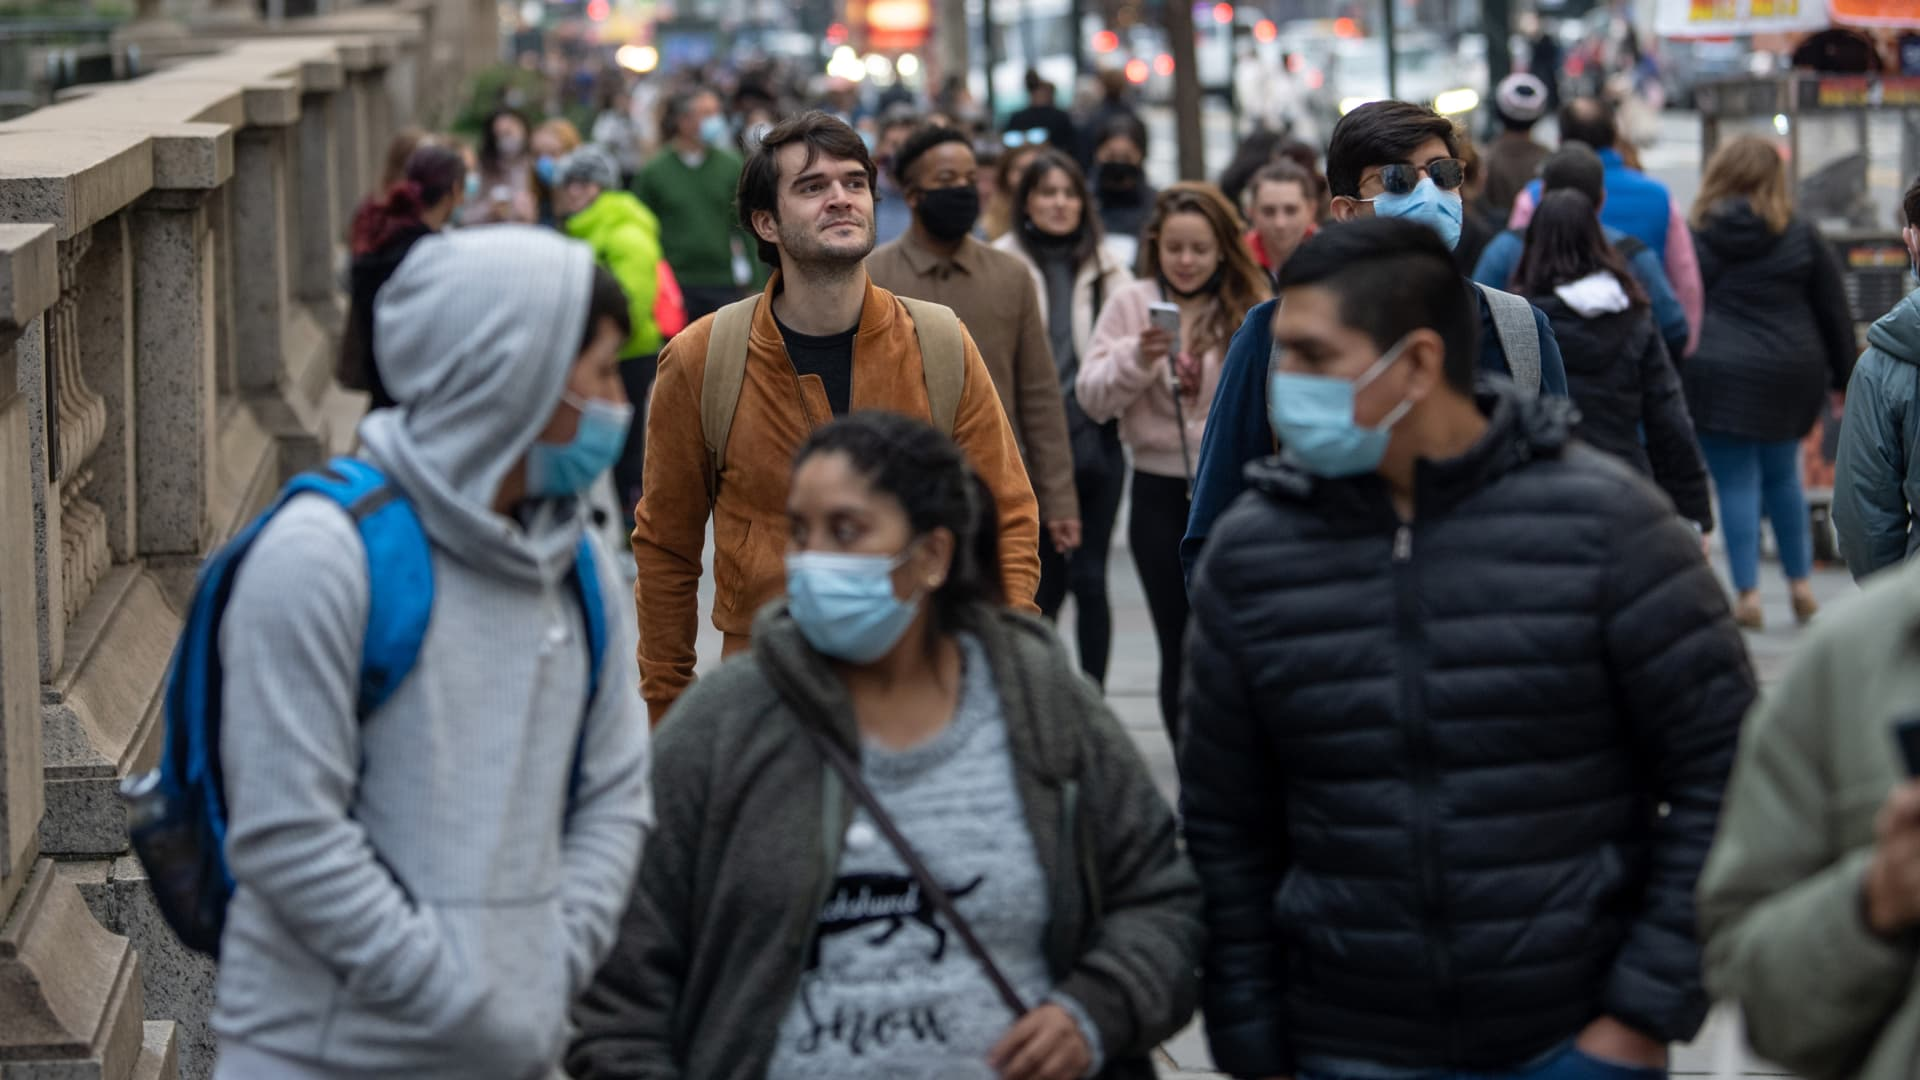 A man without a mask walks through a crowd of people on Dec. 13, 2020 in New York.